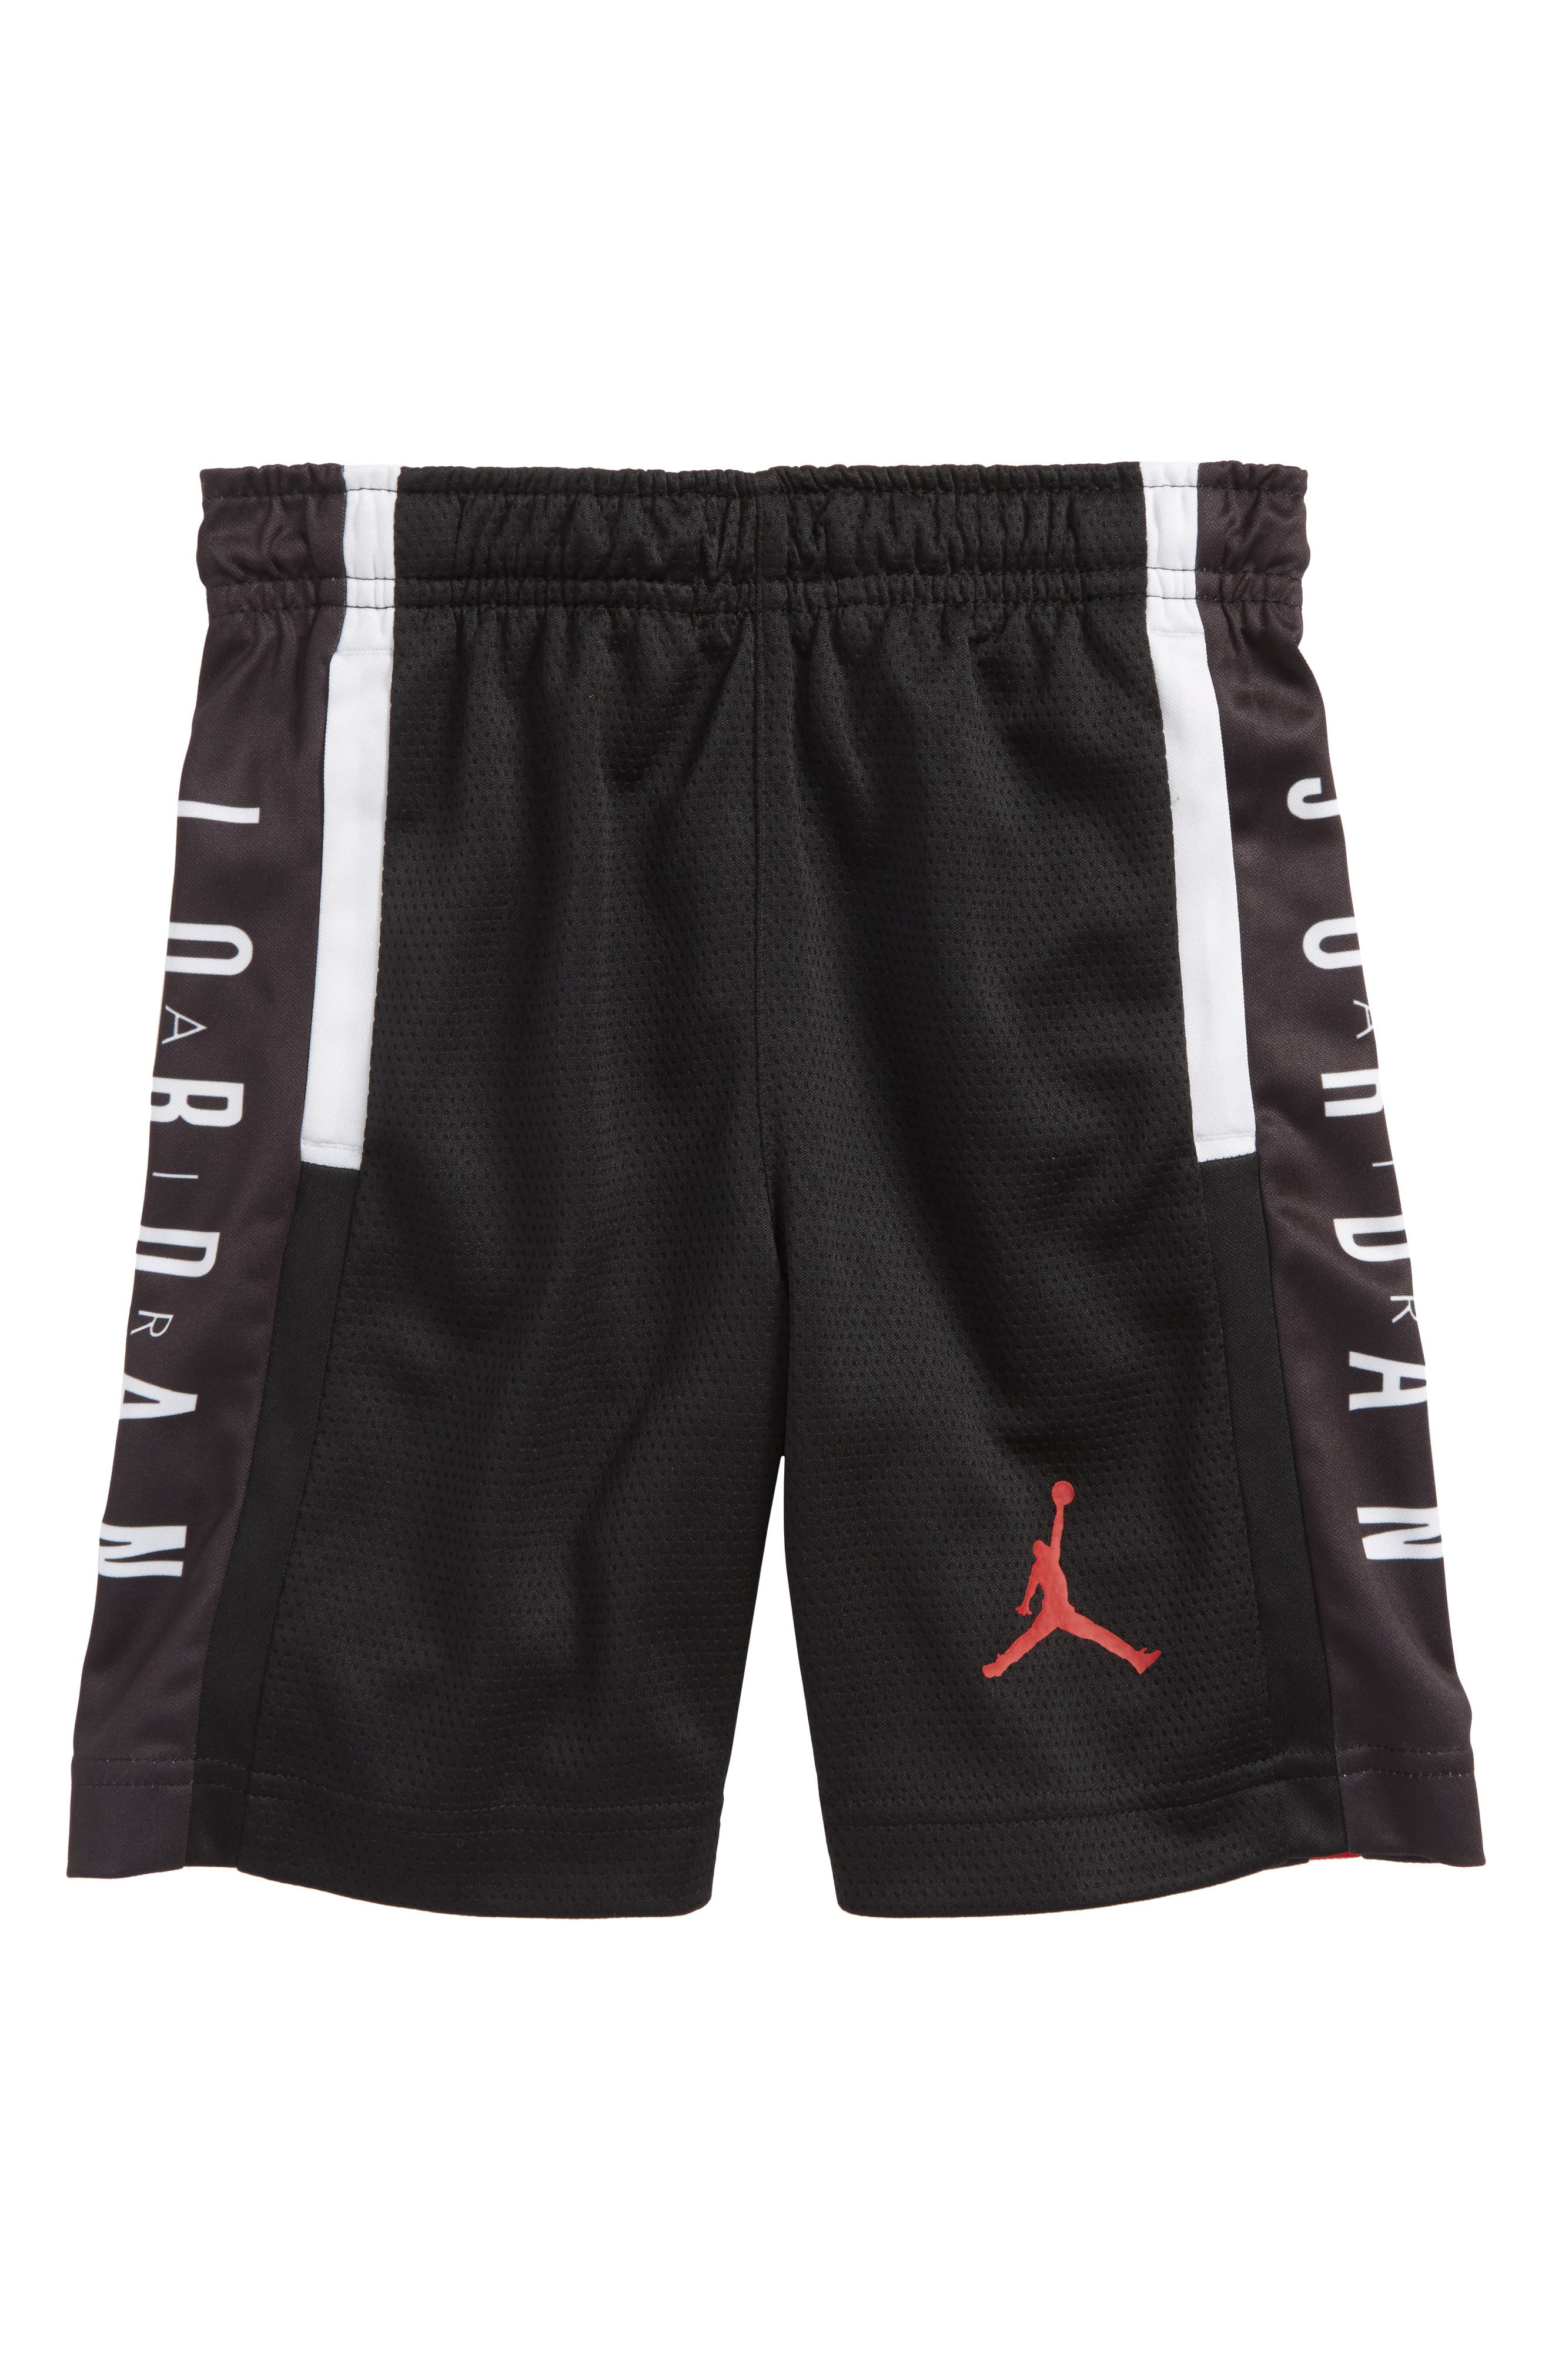 Jordan Rise Dri-FIT Graphic Shorts,                         Main,                         color, 004